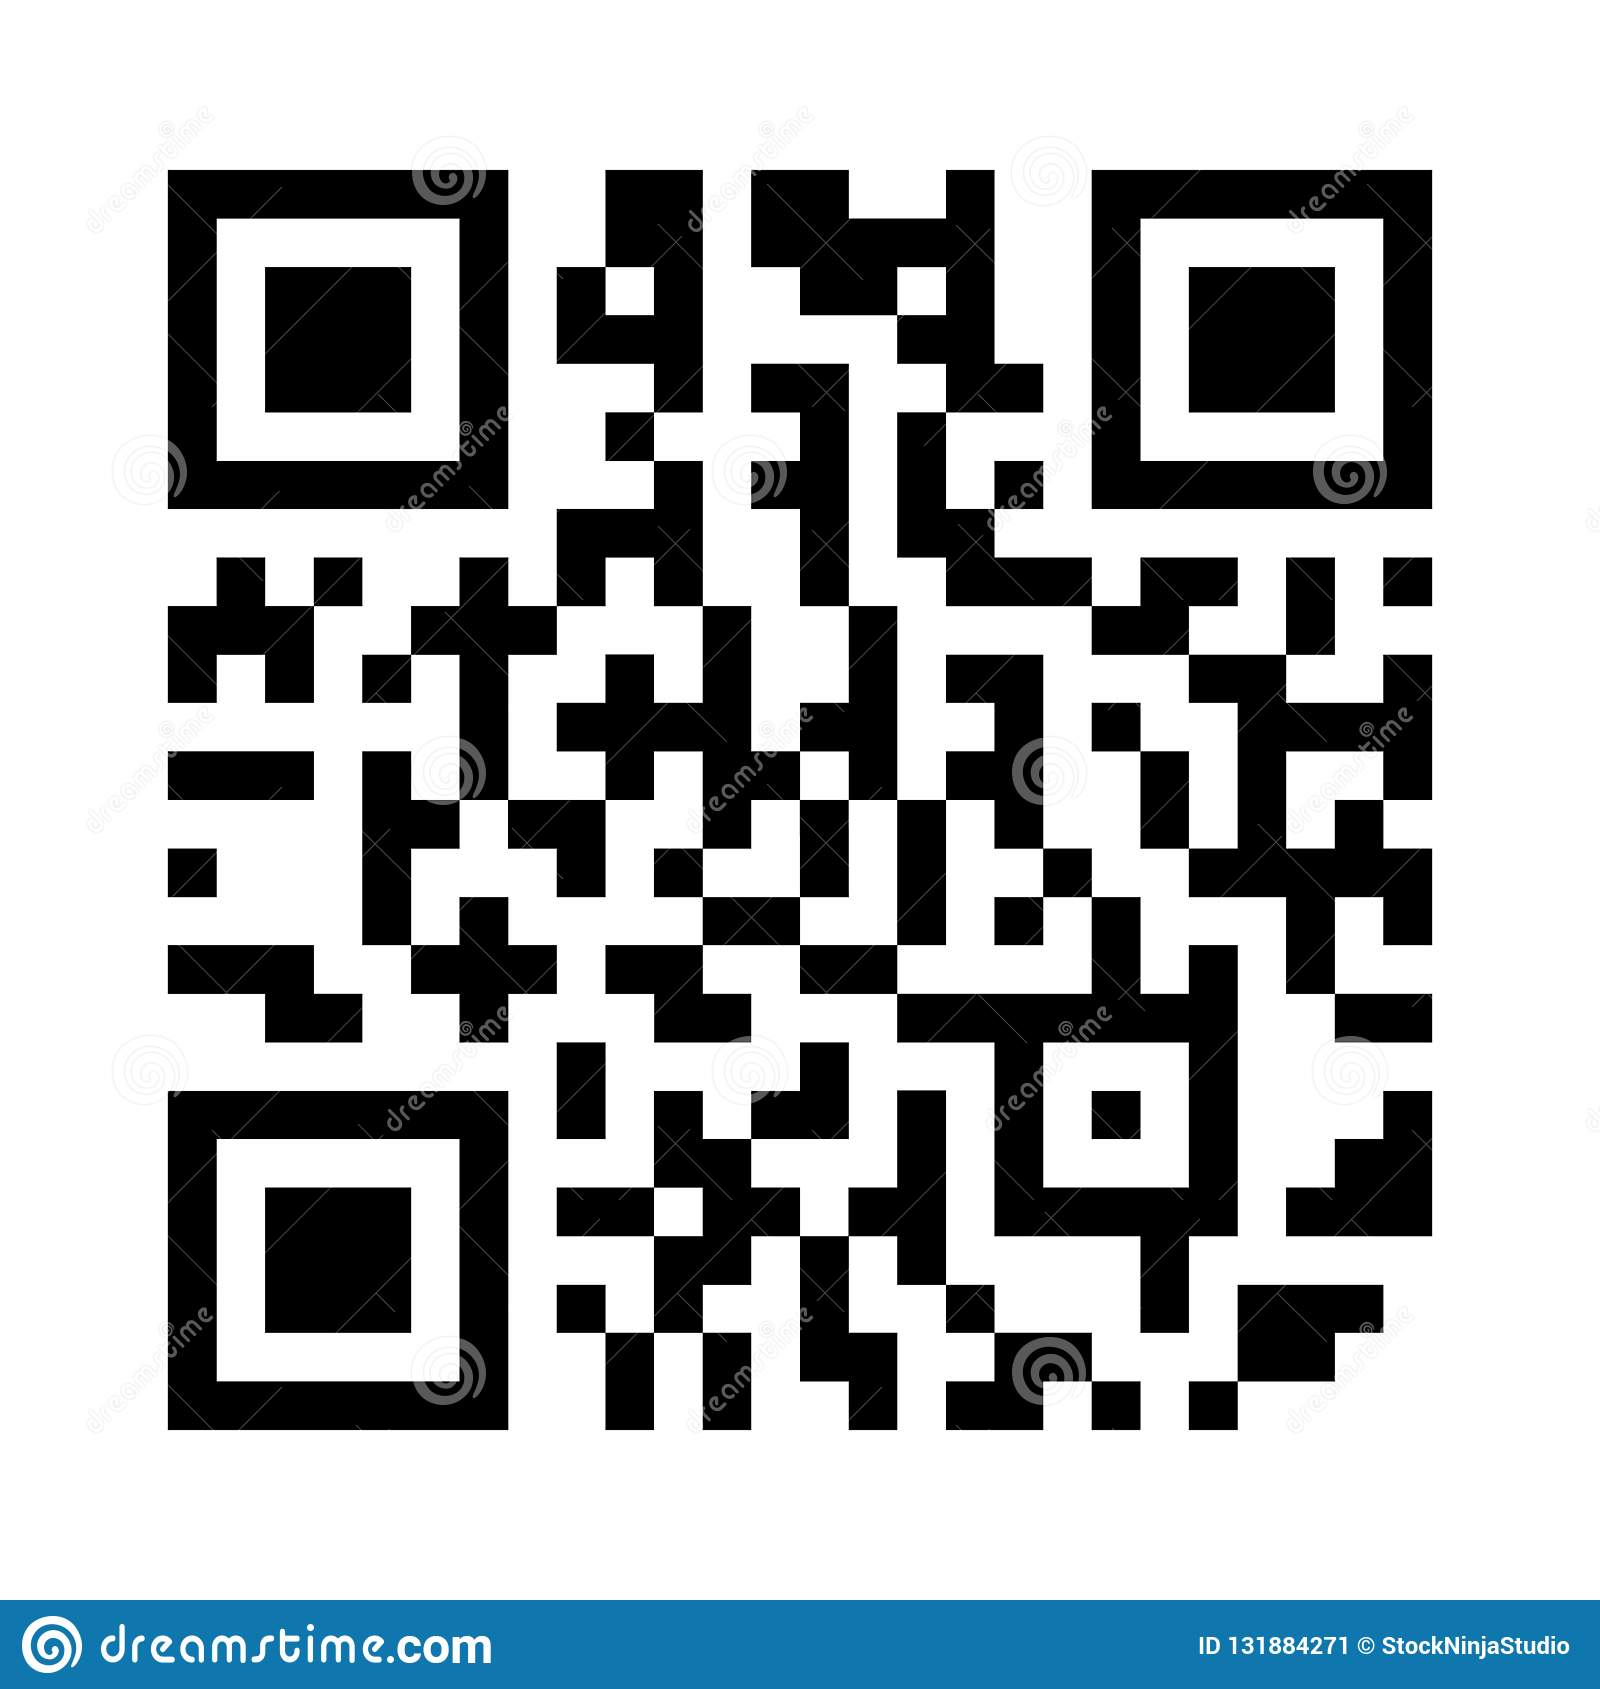 Modern Simple Flat QR Code Sign In Vector Illustration